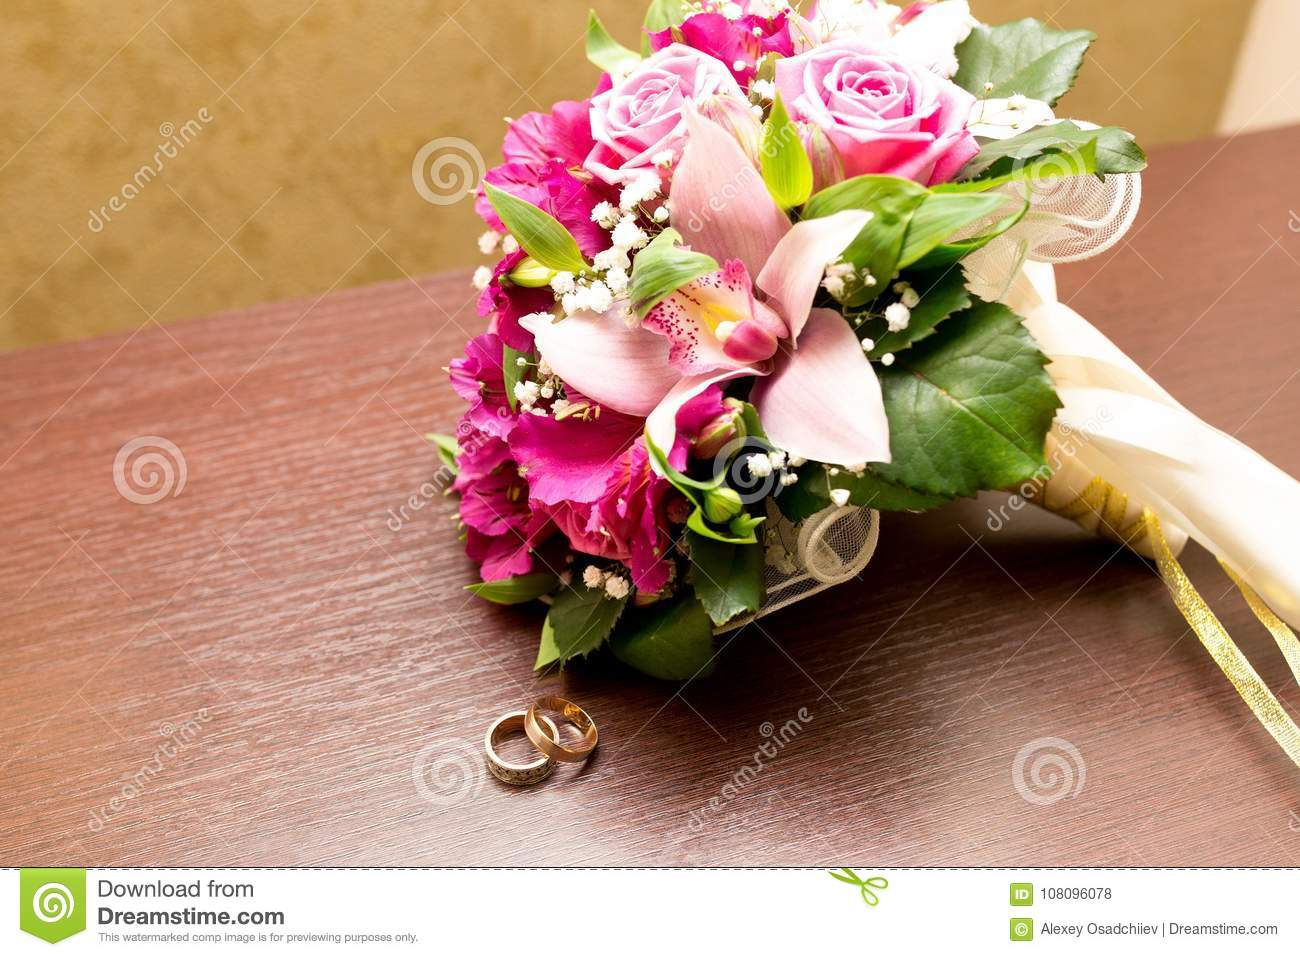 Big flower bouquet stock photo image of background 108096078 big flower bouquet izmirmasajfo